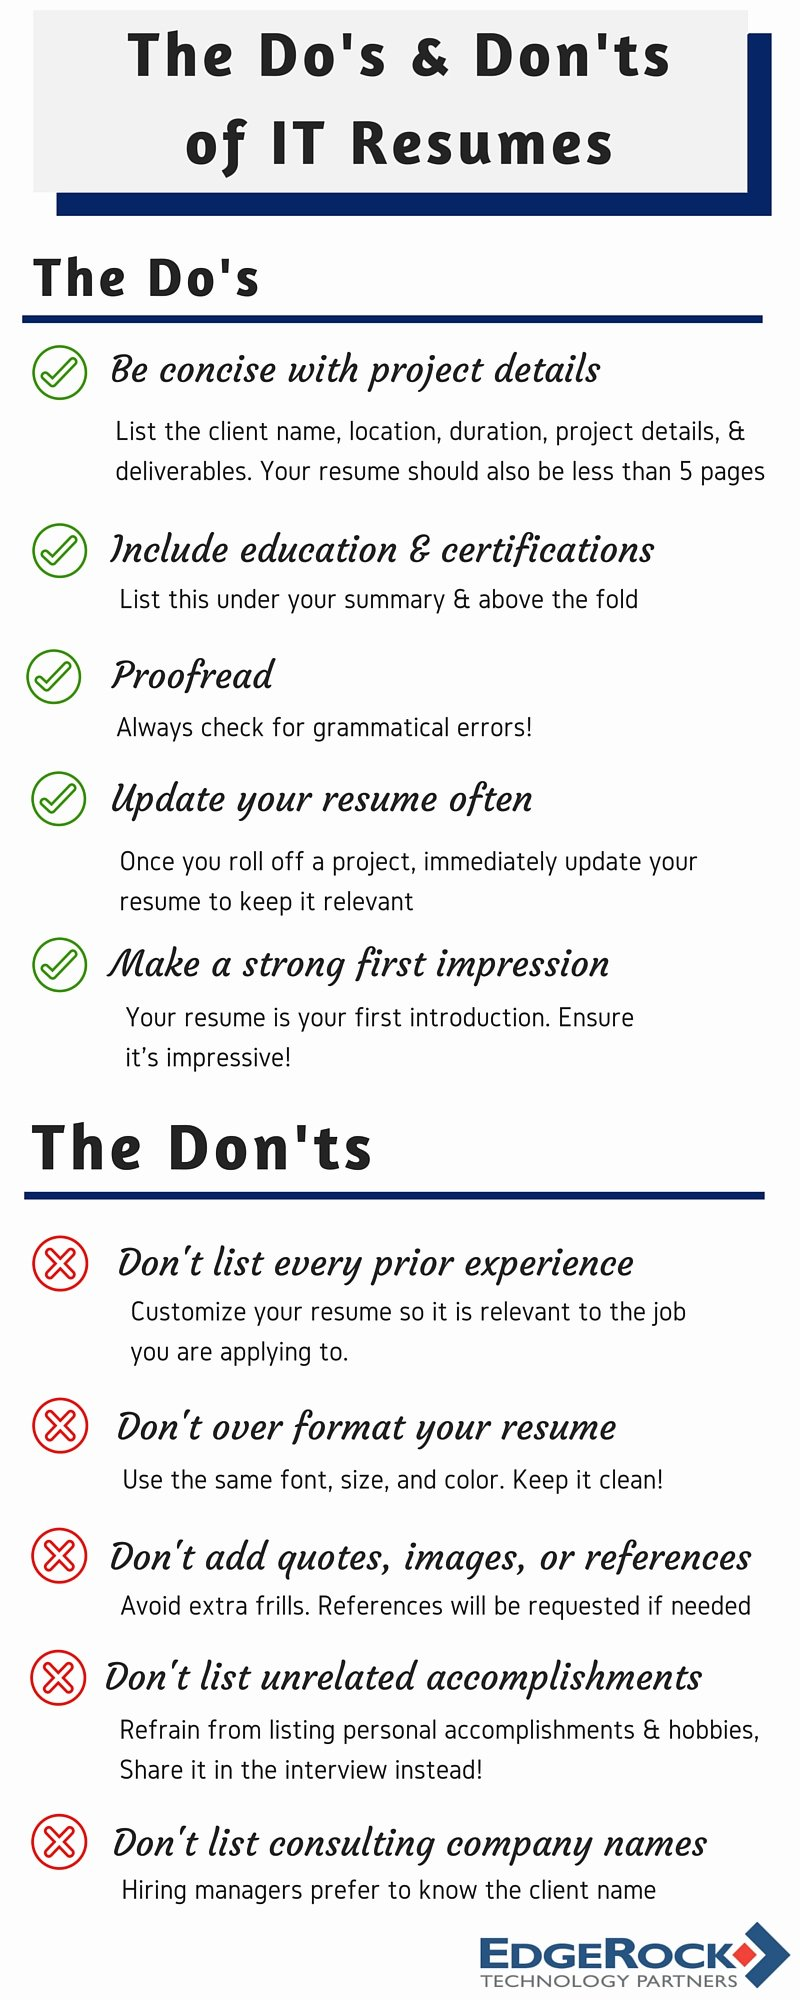 The Do's and Don'ts Of It Resumes